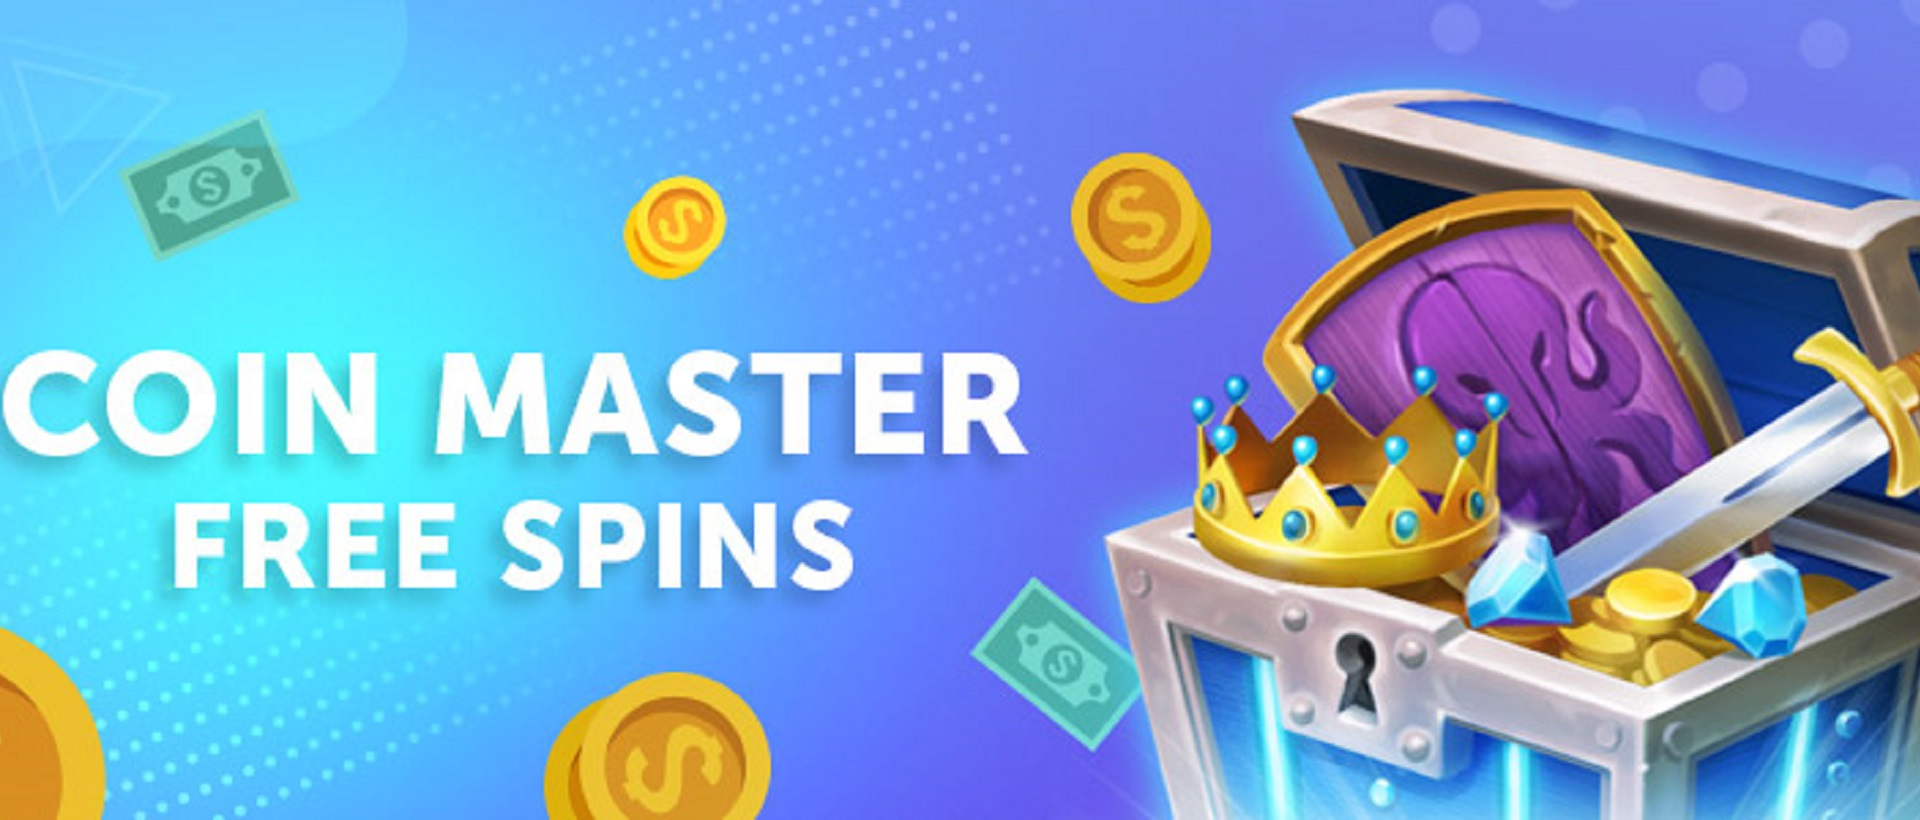 Spin and Coin news - free spins and coins daily